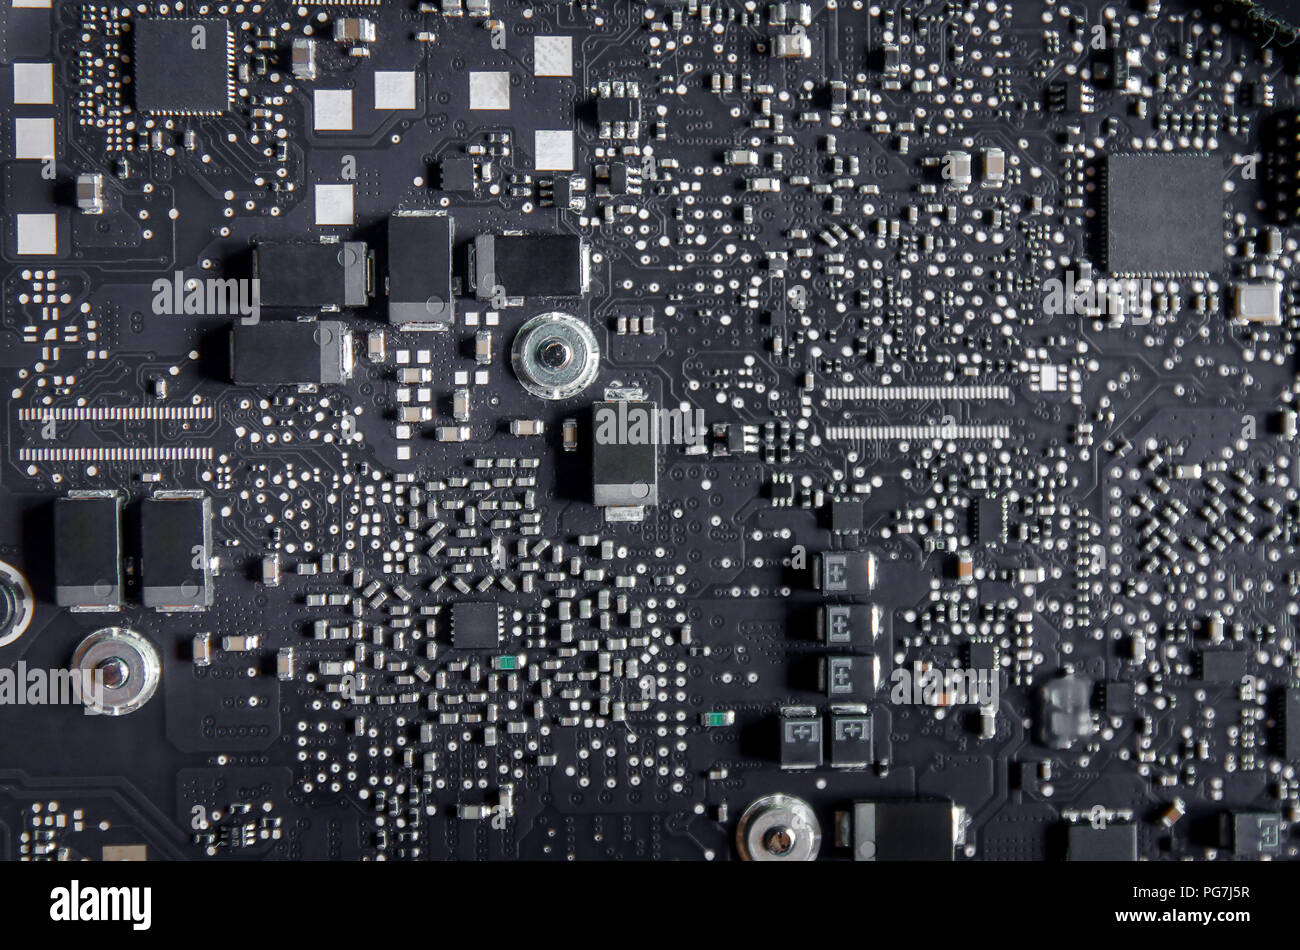 Circuit Board Repair Stock Photos Assembly Buy Electronic Circuits Boardcircuit Close Up Of And Computer Hardware Repairing Technology